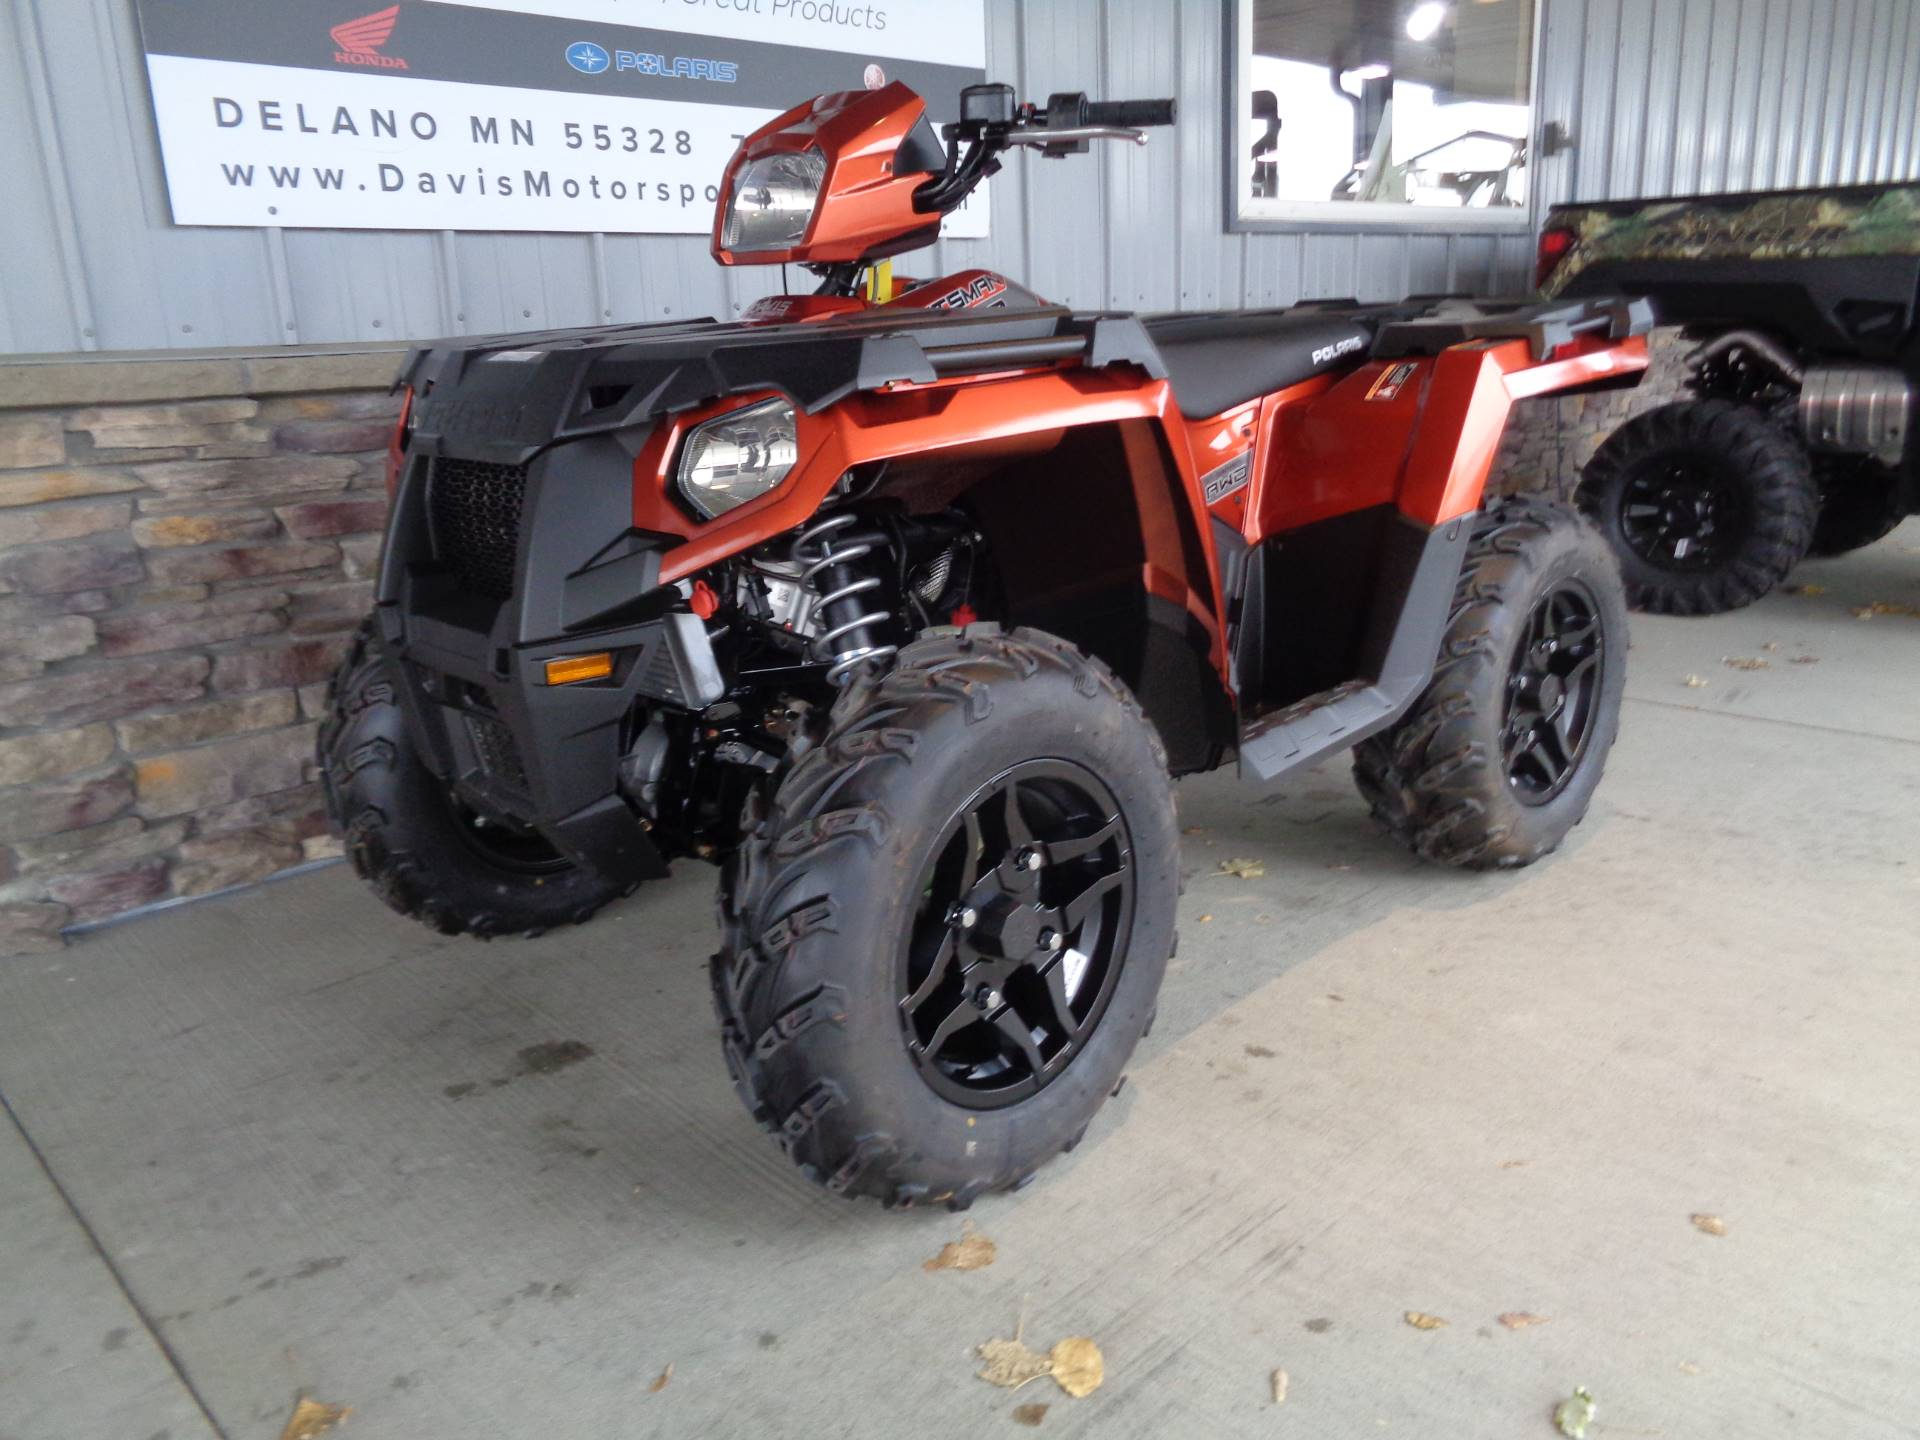 2020 Polaris Sportsman 570 Premium in Delano, Minnesota - Photo 4